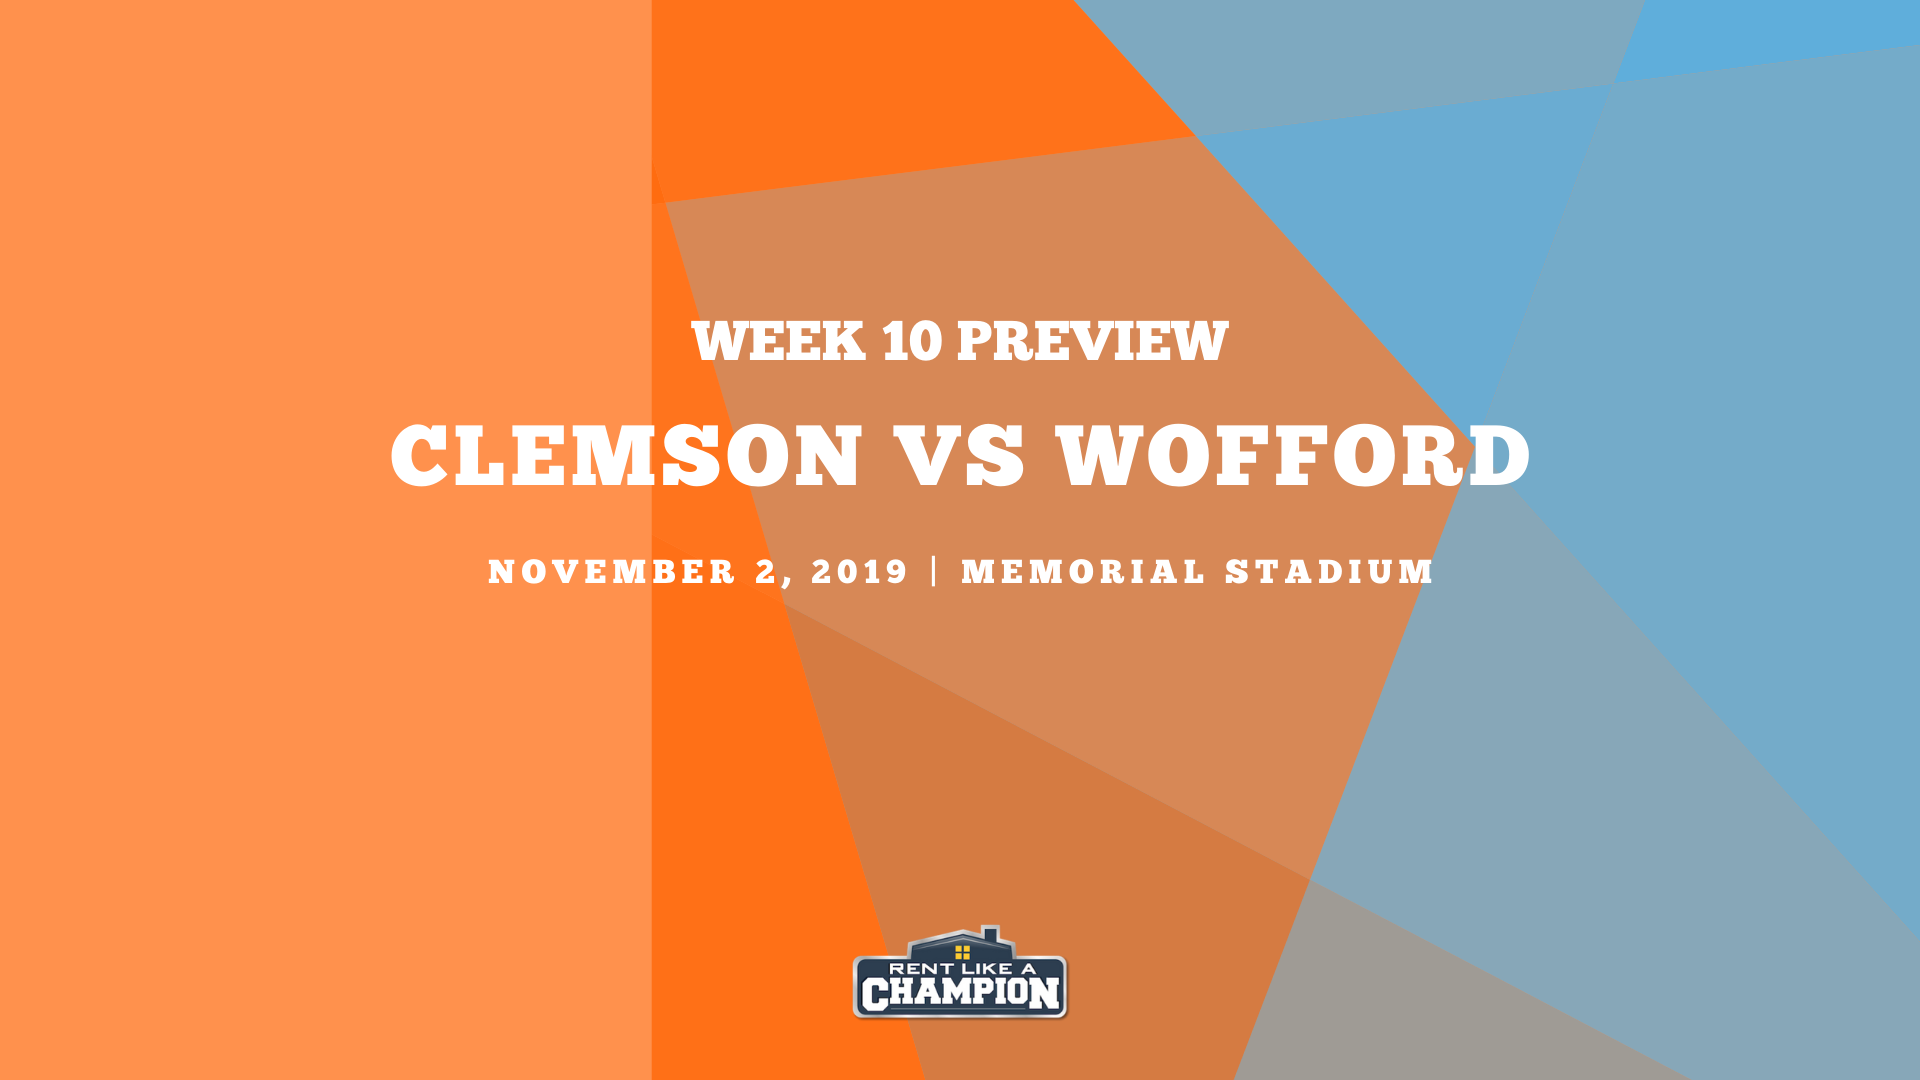 Clemson vs. Wofford: Preview, keys to the game, and predictions